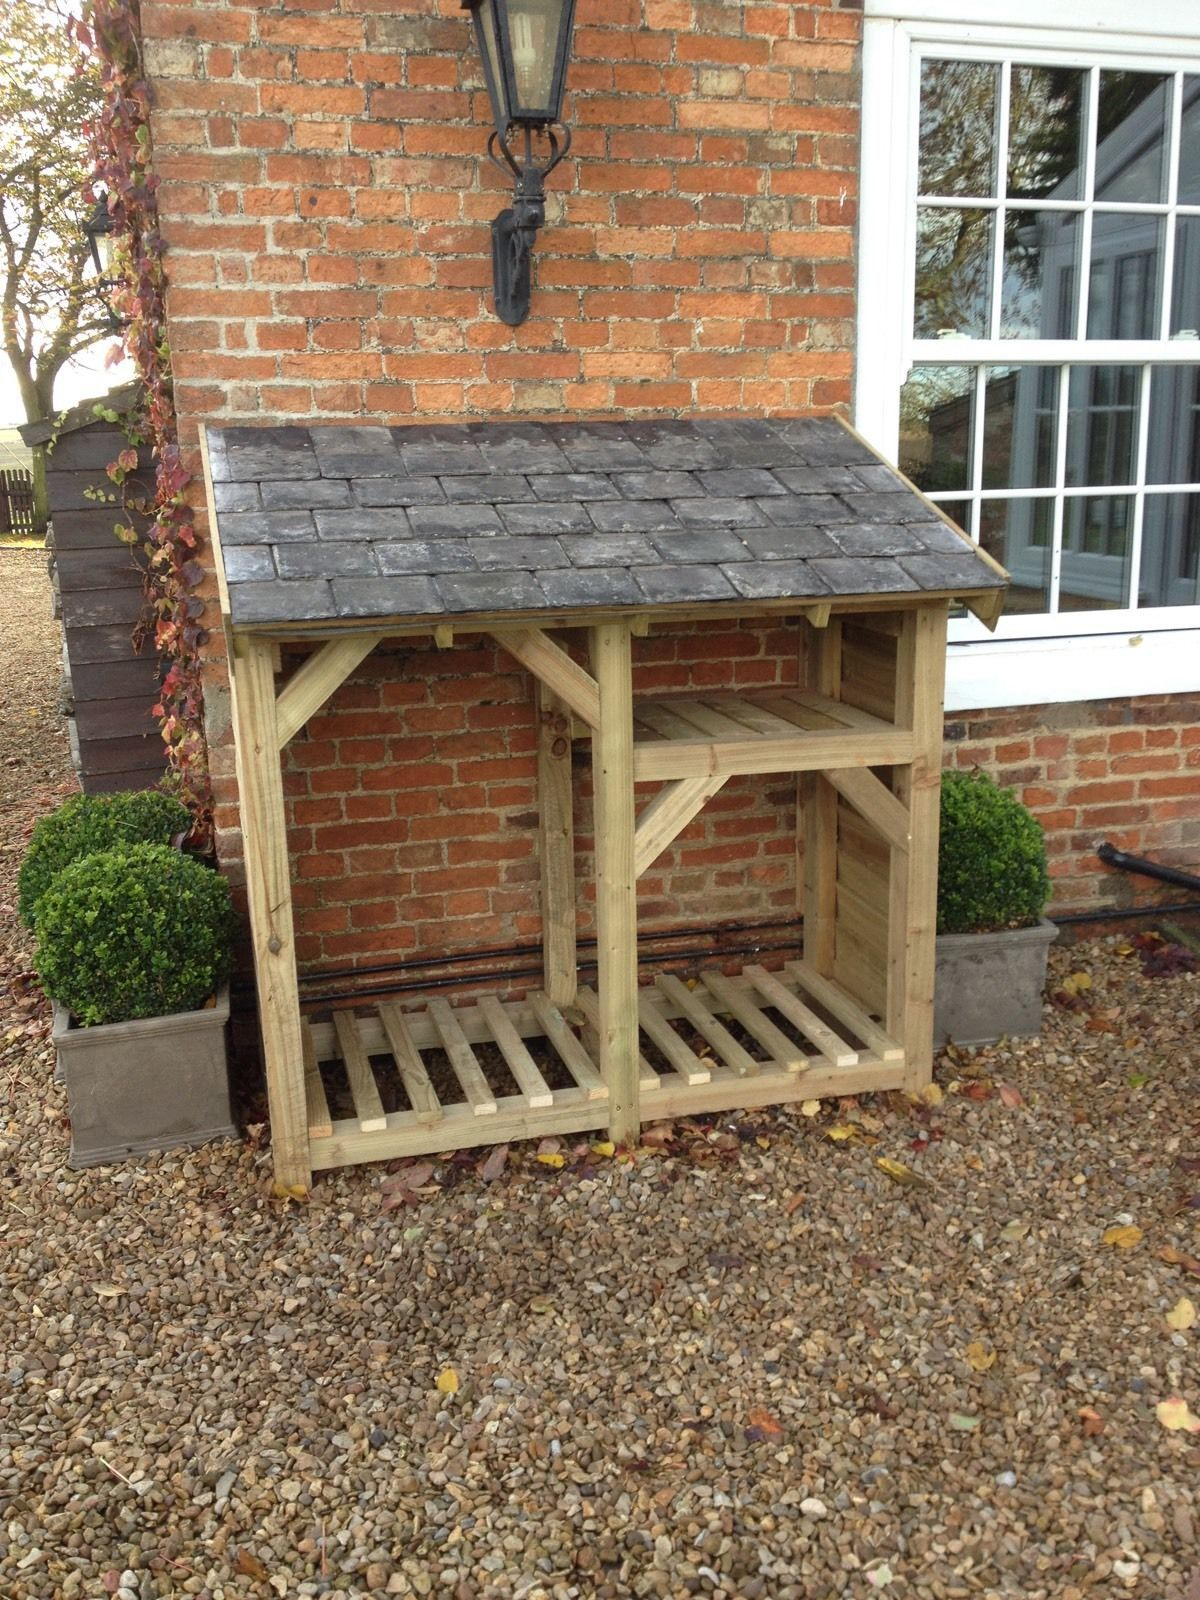 firewood east lovely regard store to winter wood sheds for storage from throughout home with coast incredible along sale shed